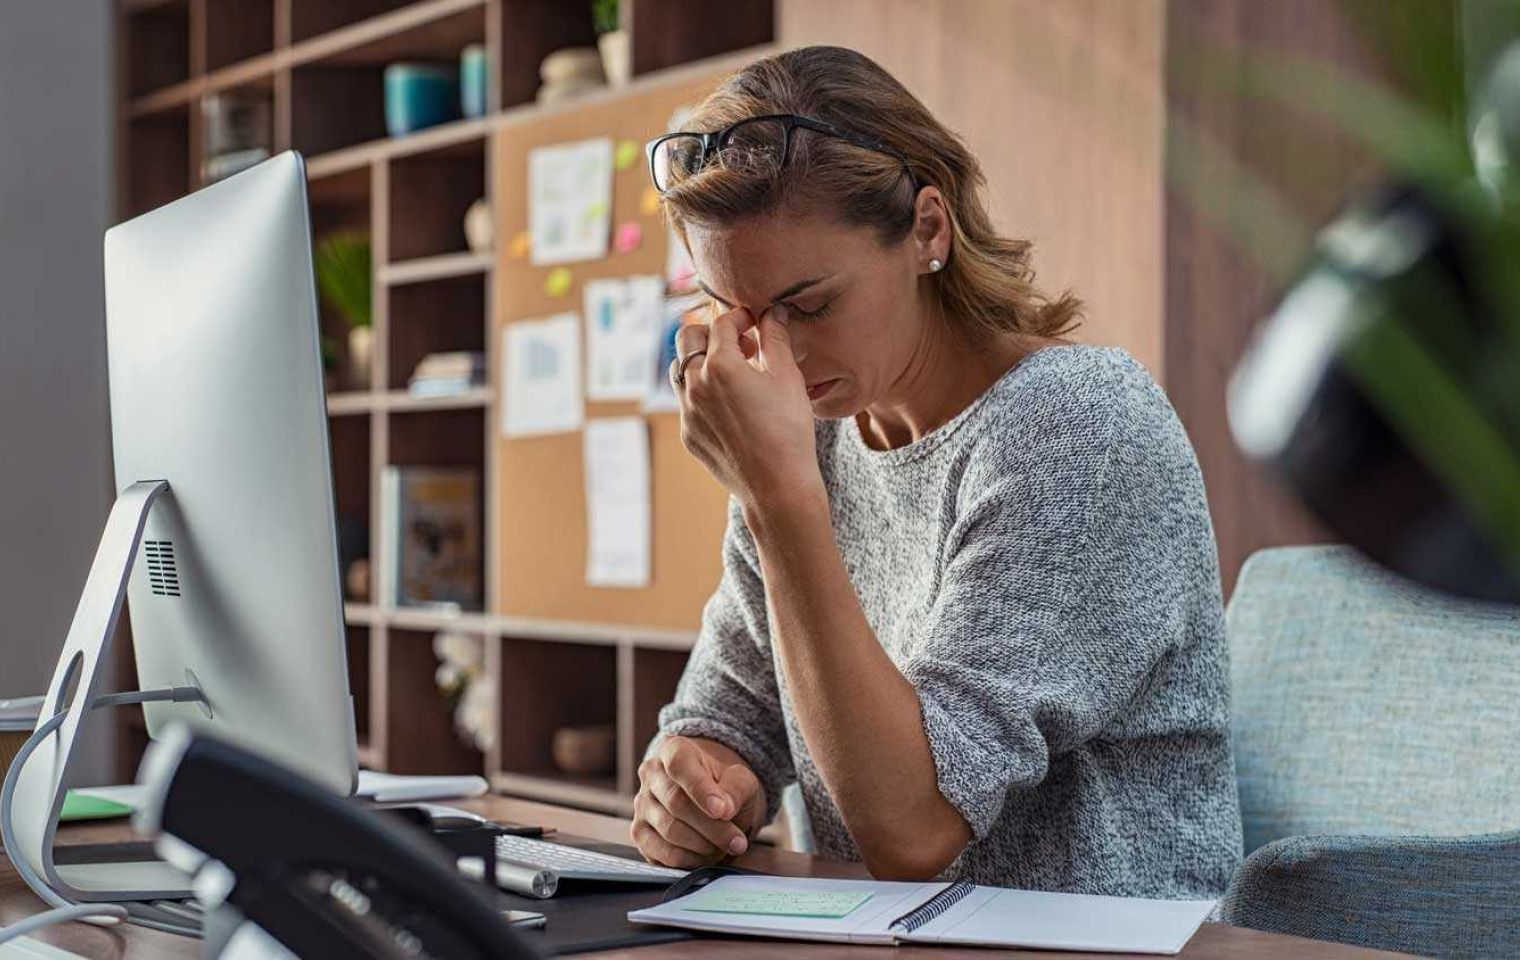 Woman having headache at computer